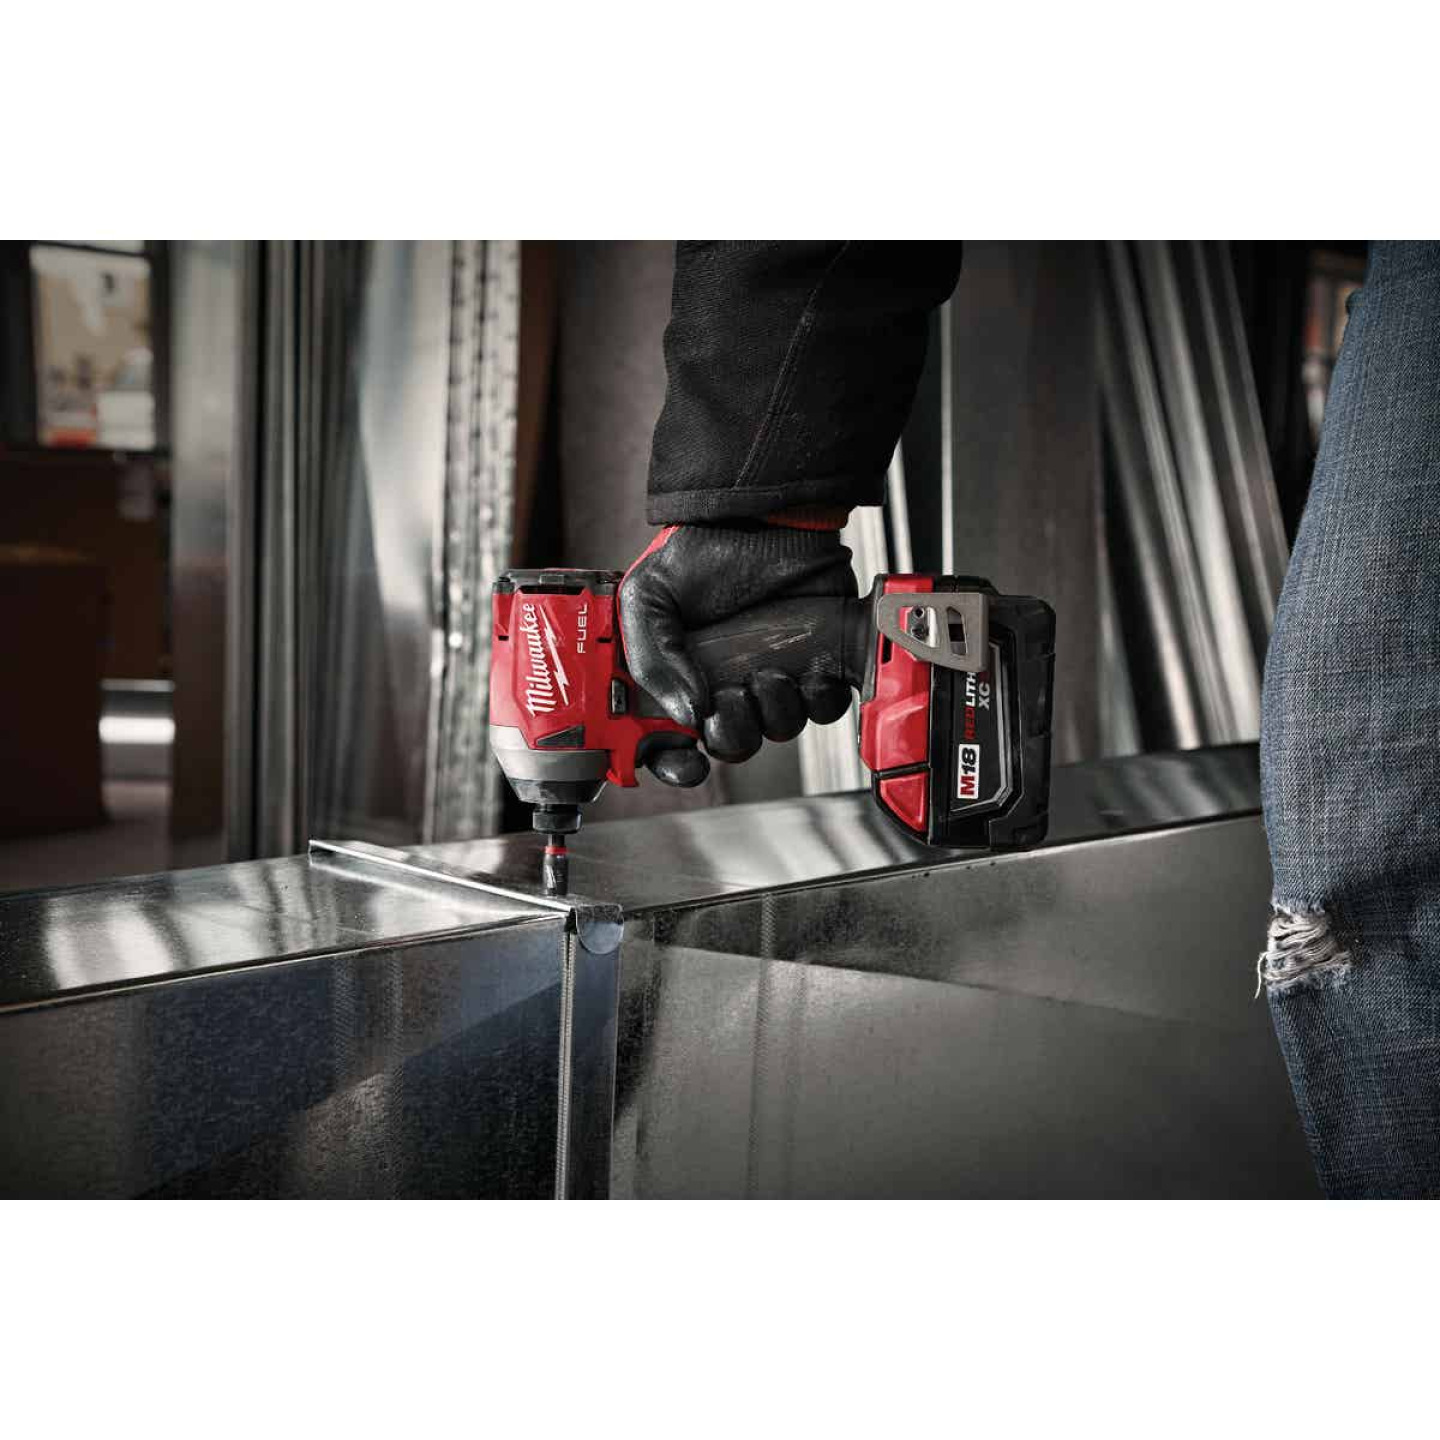 Milwaukee M18 FUEL 18 Volt Lithium-Ion Brushless 1/4 In. Hex Impact Driver (Bare Tool) Image 2